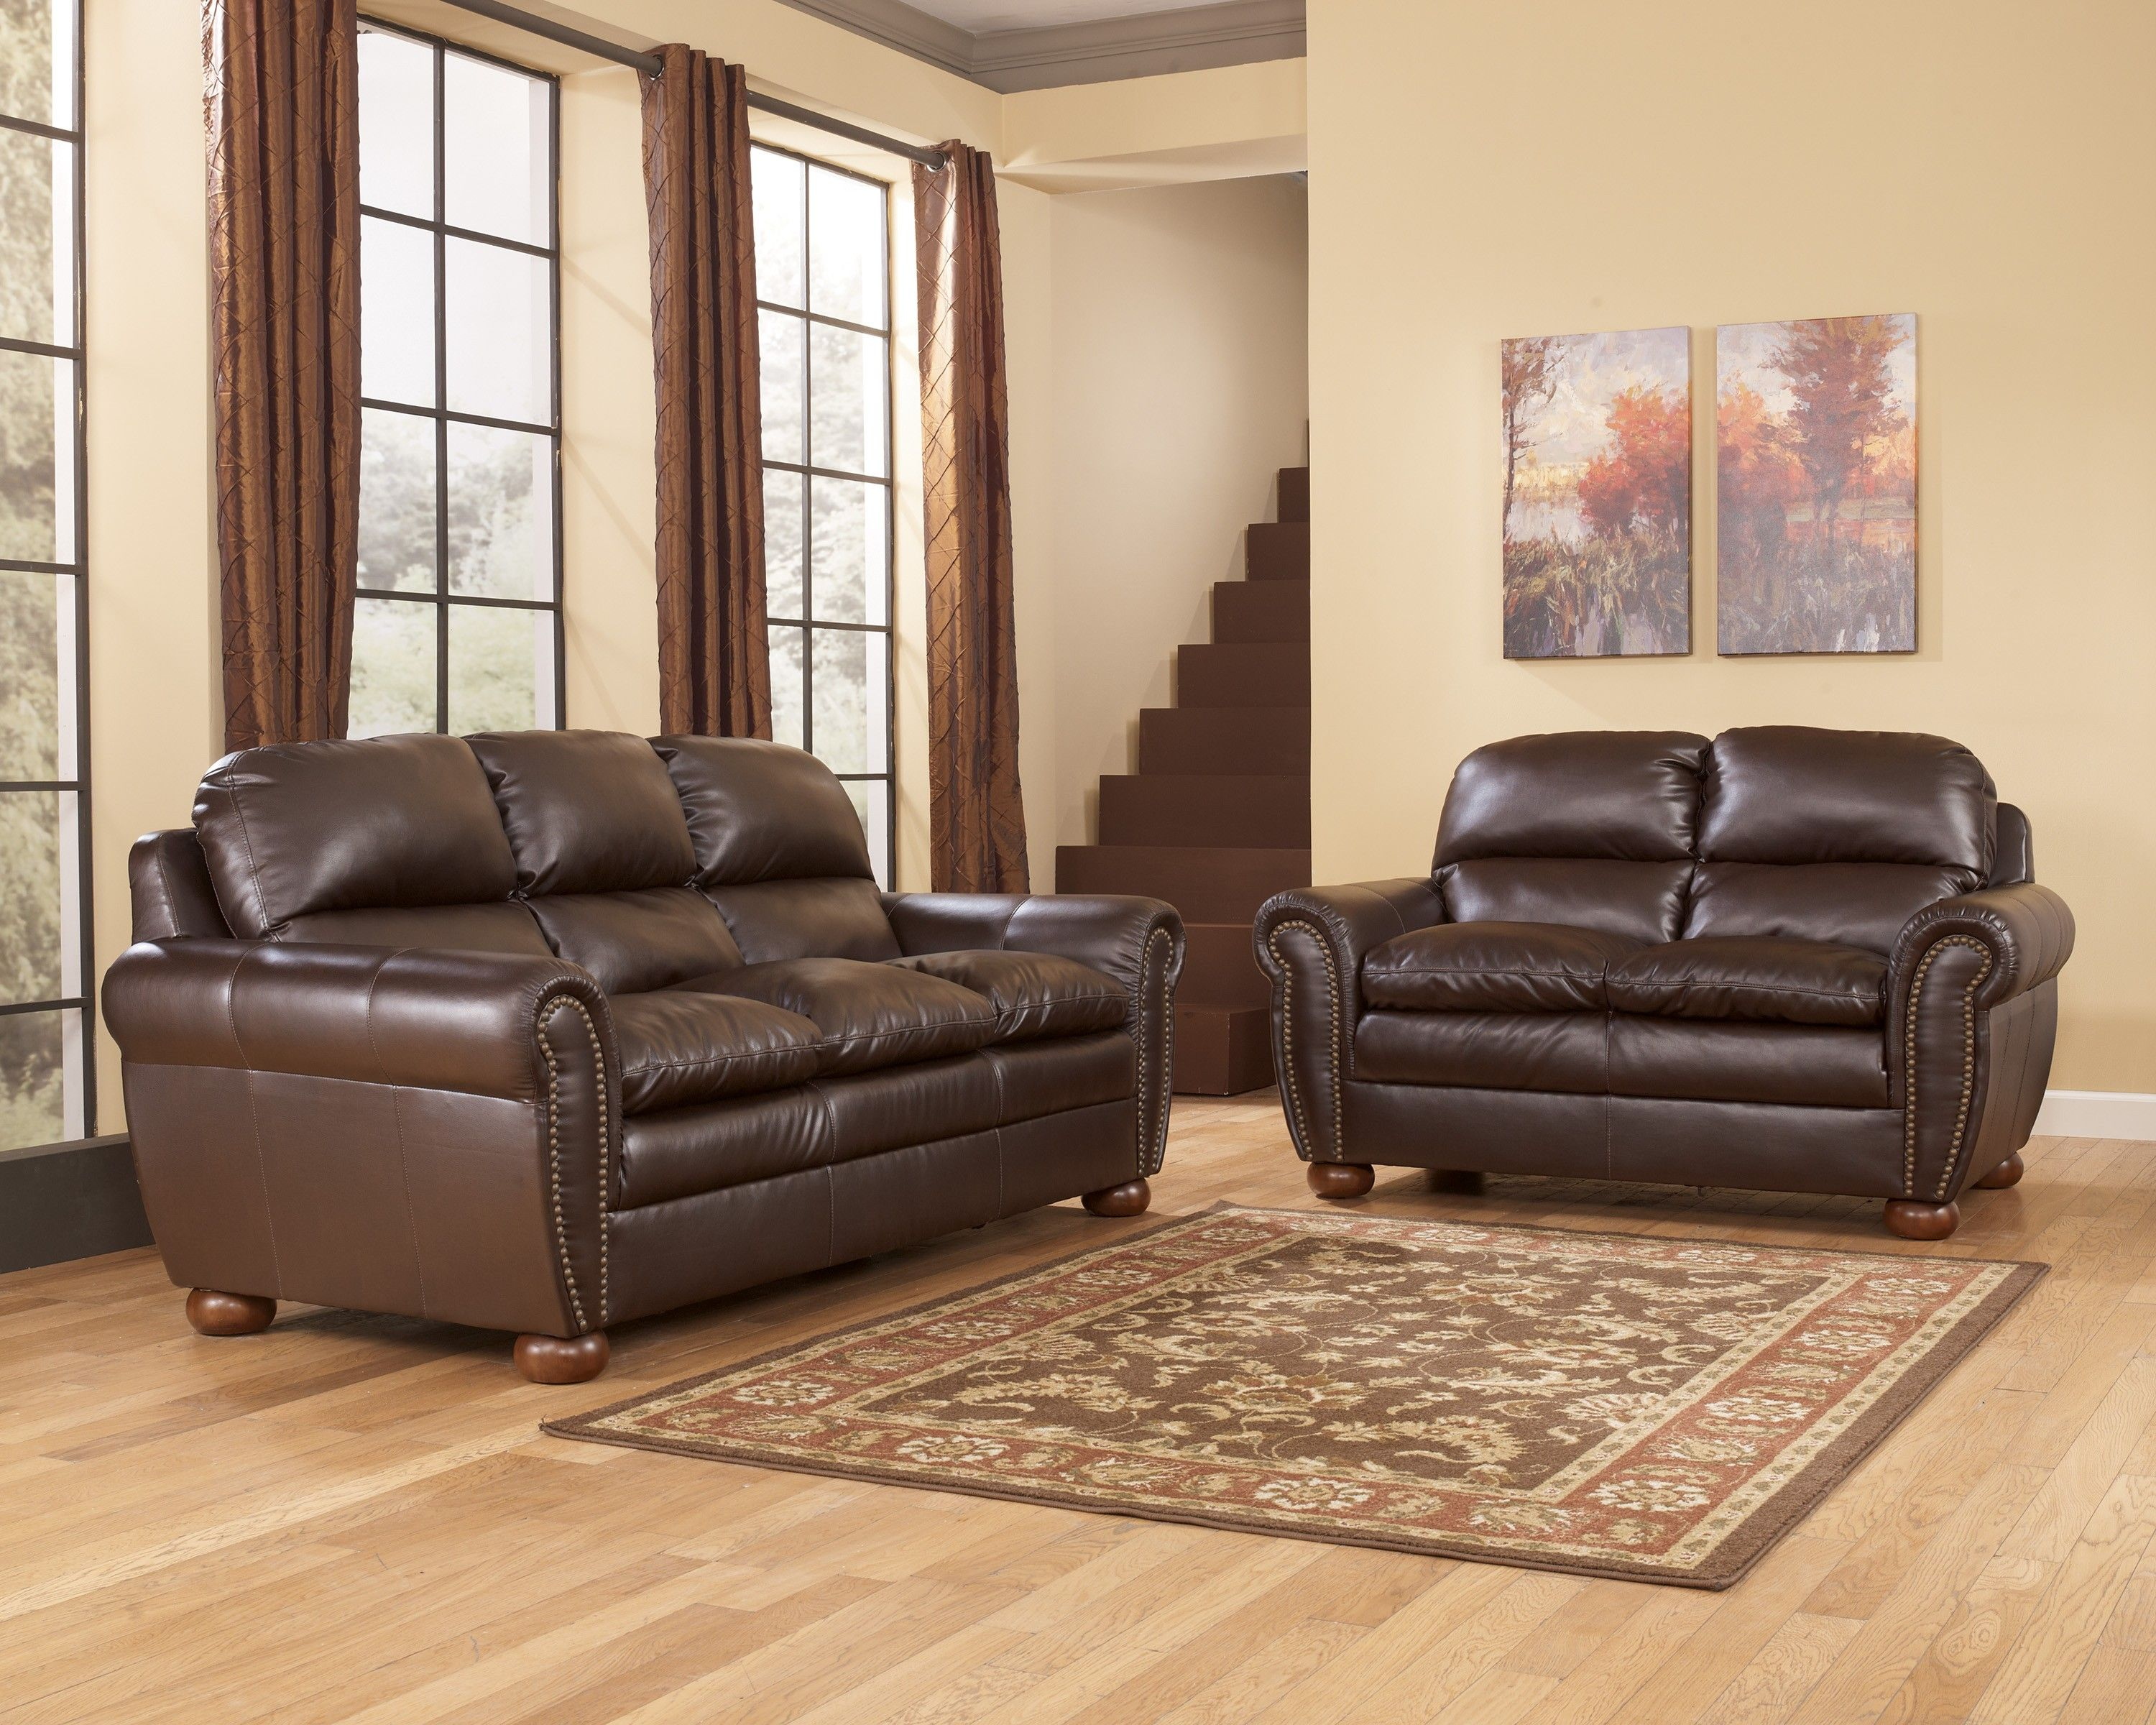 Excellent Ashley Furniture Sofas For Home Design Ideas With Ashley  Furniture Sofas